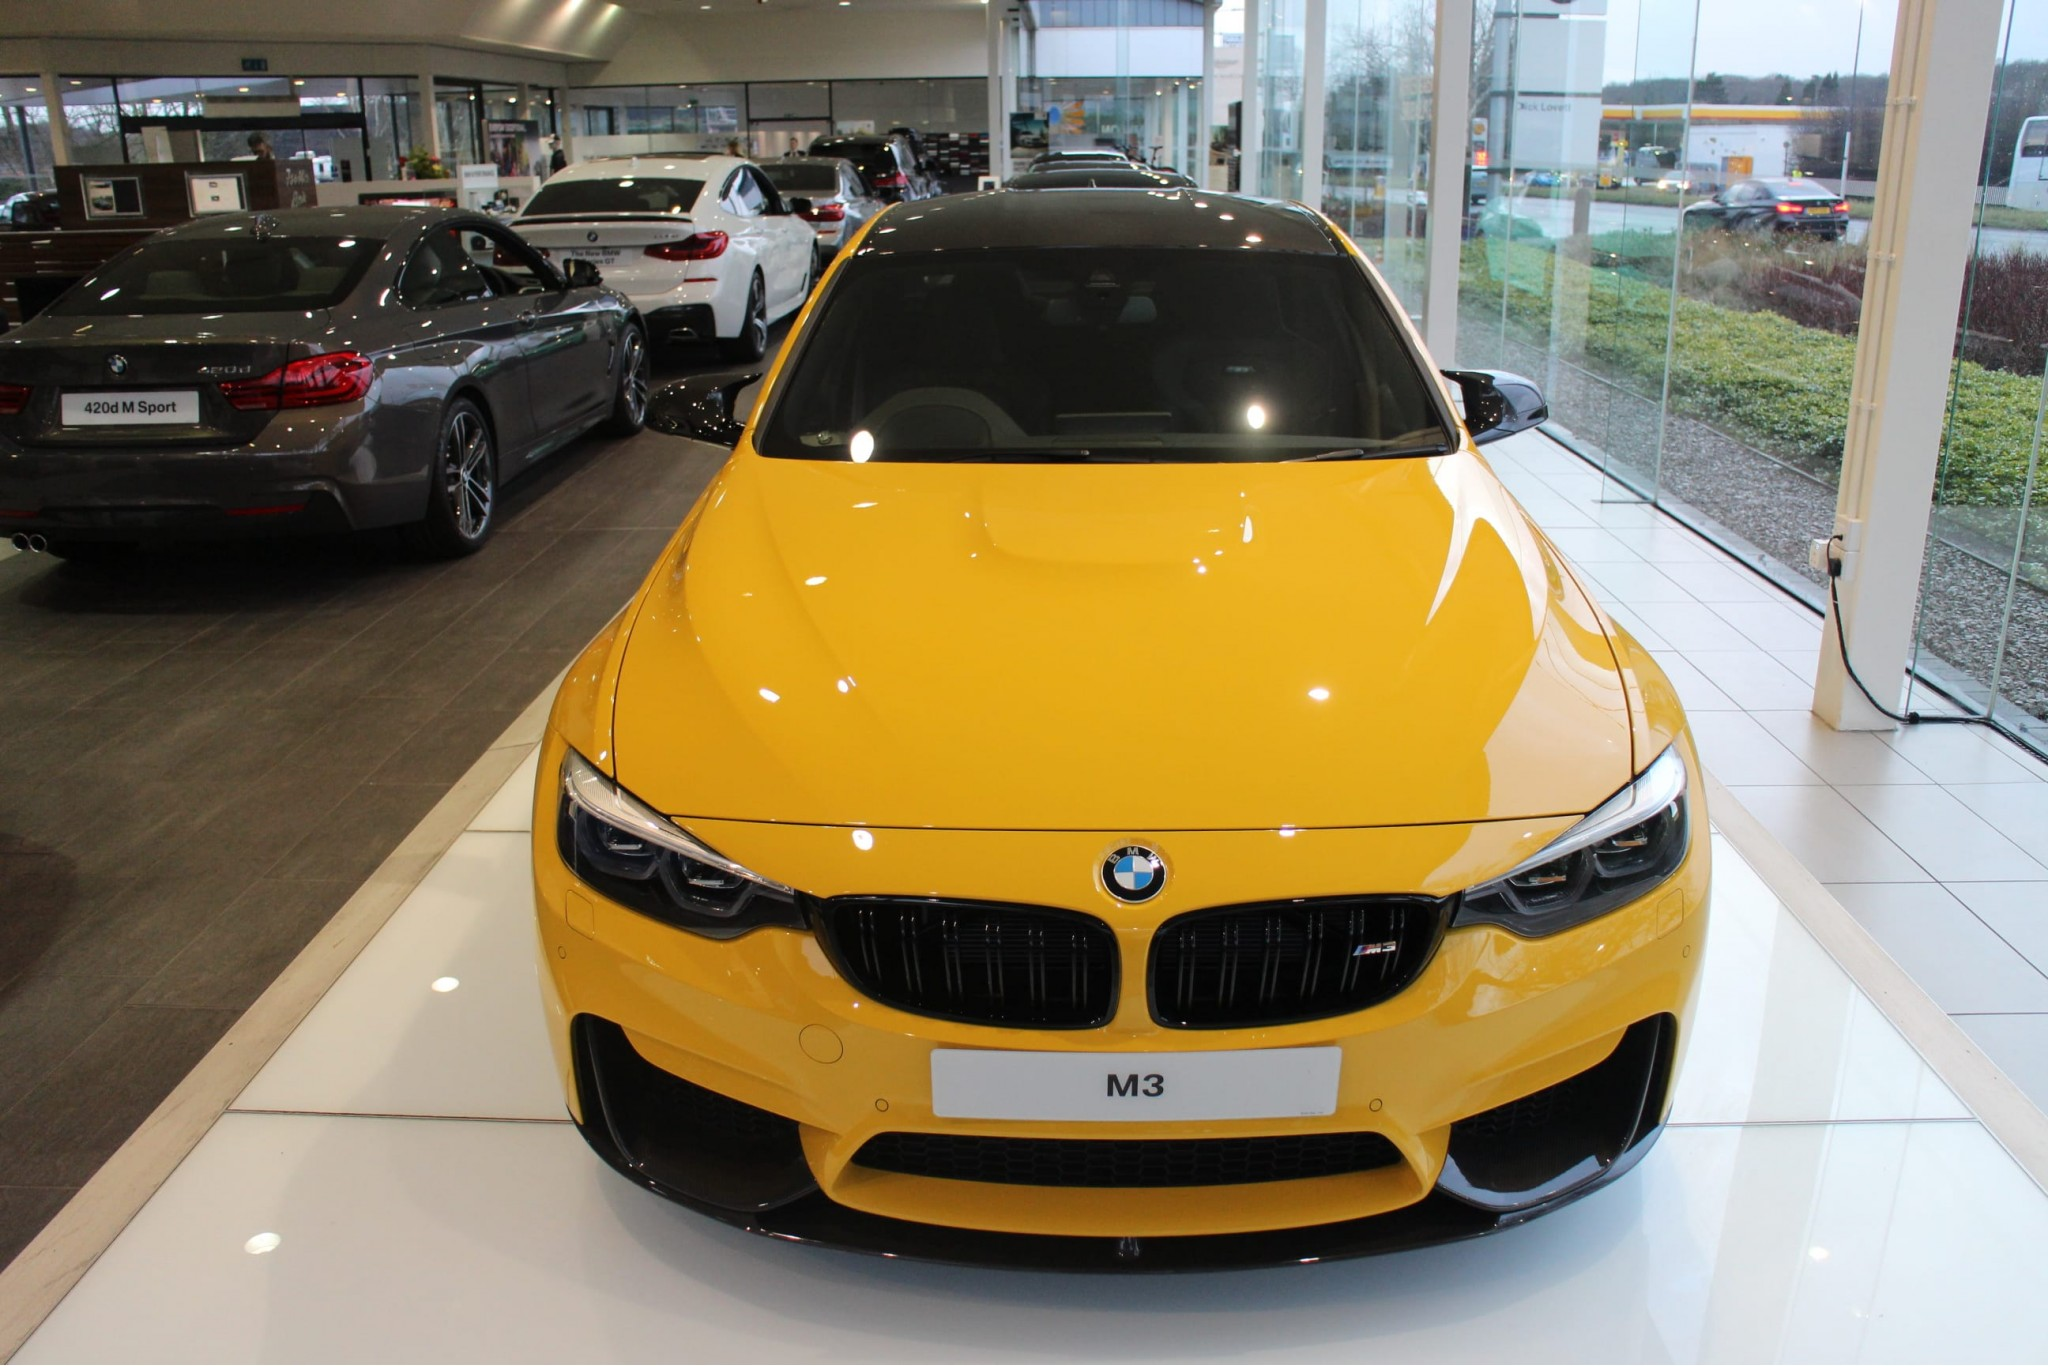 Our Current BMW M Cars at Dick Lovett